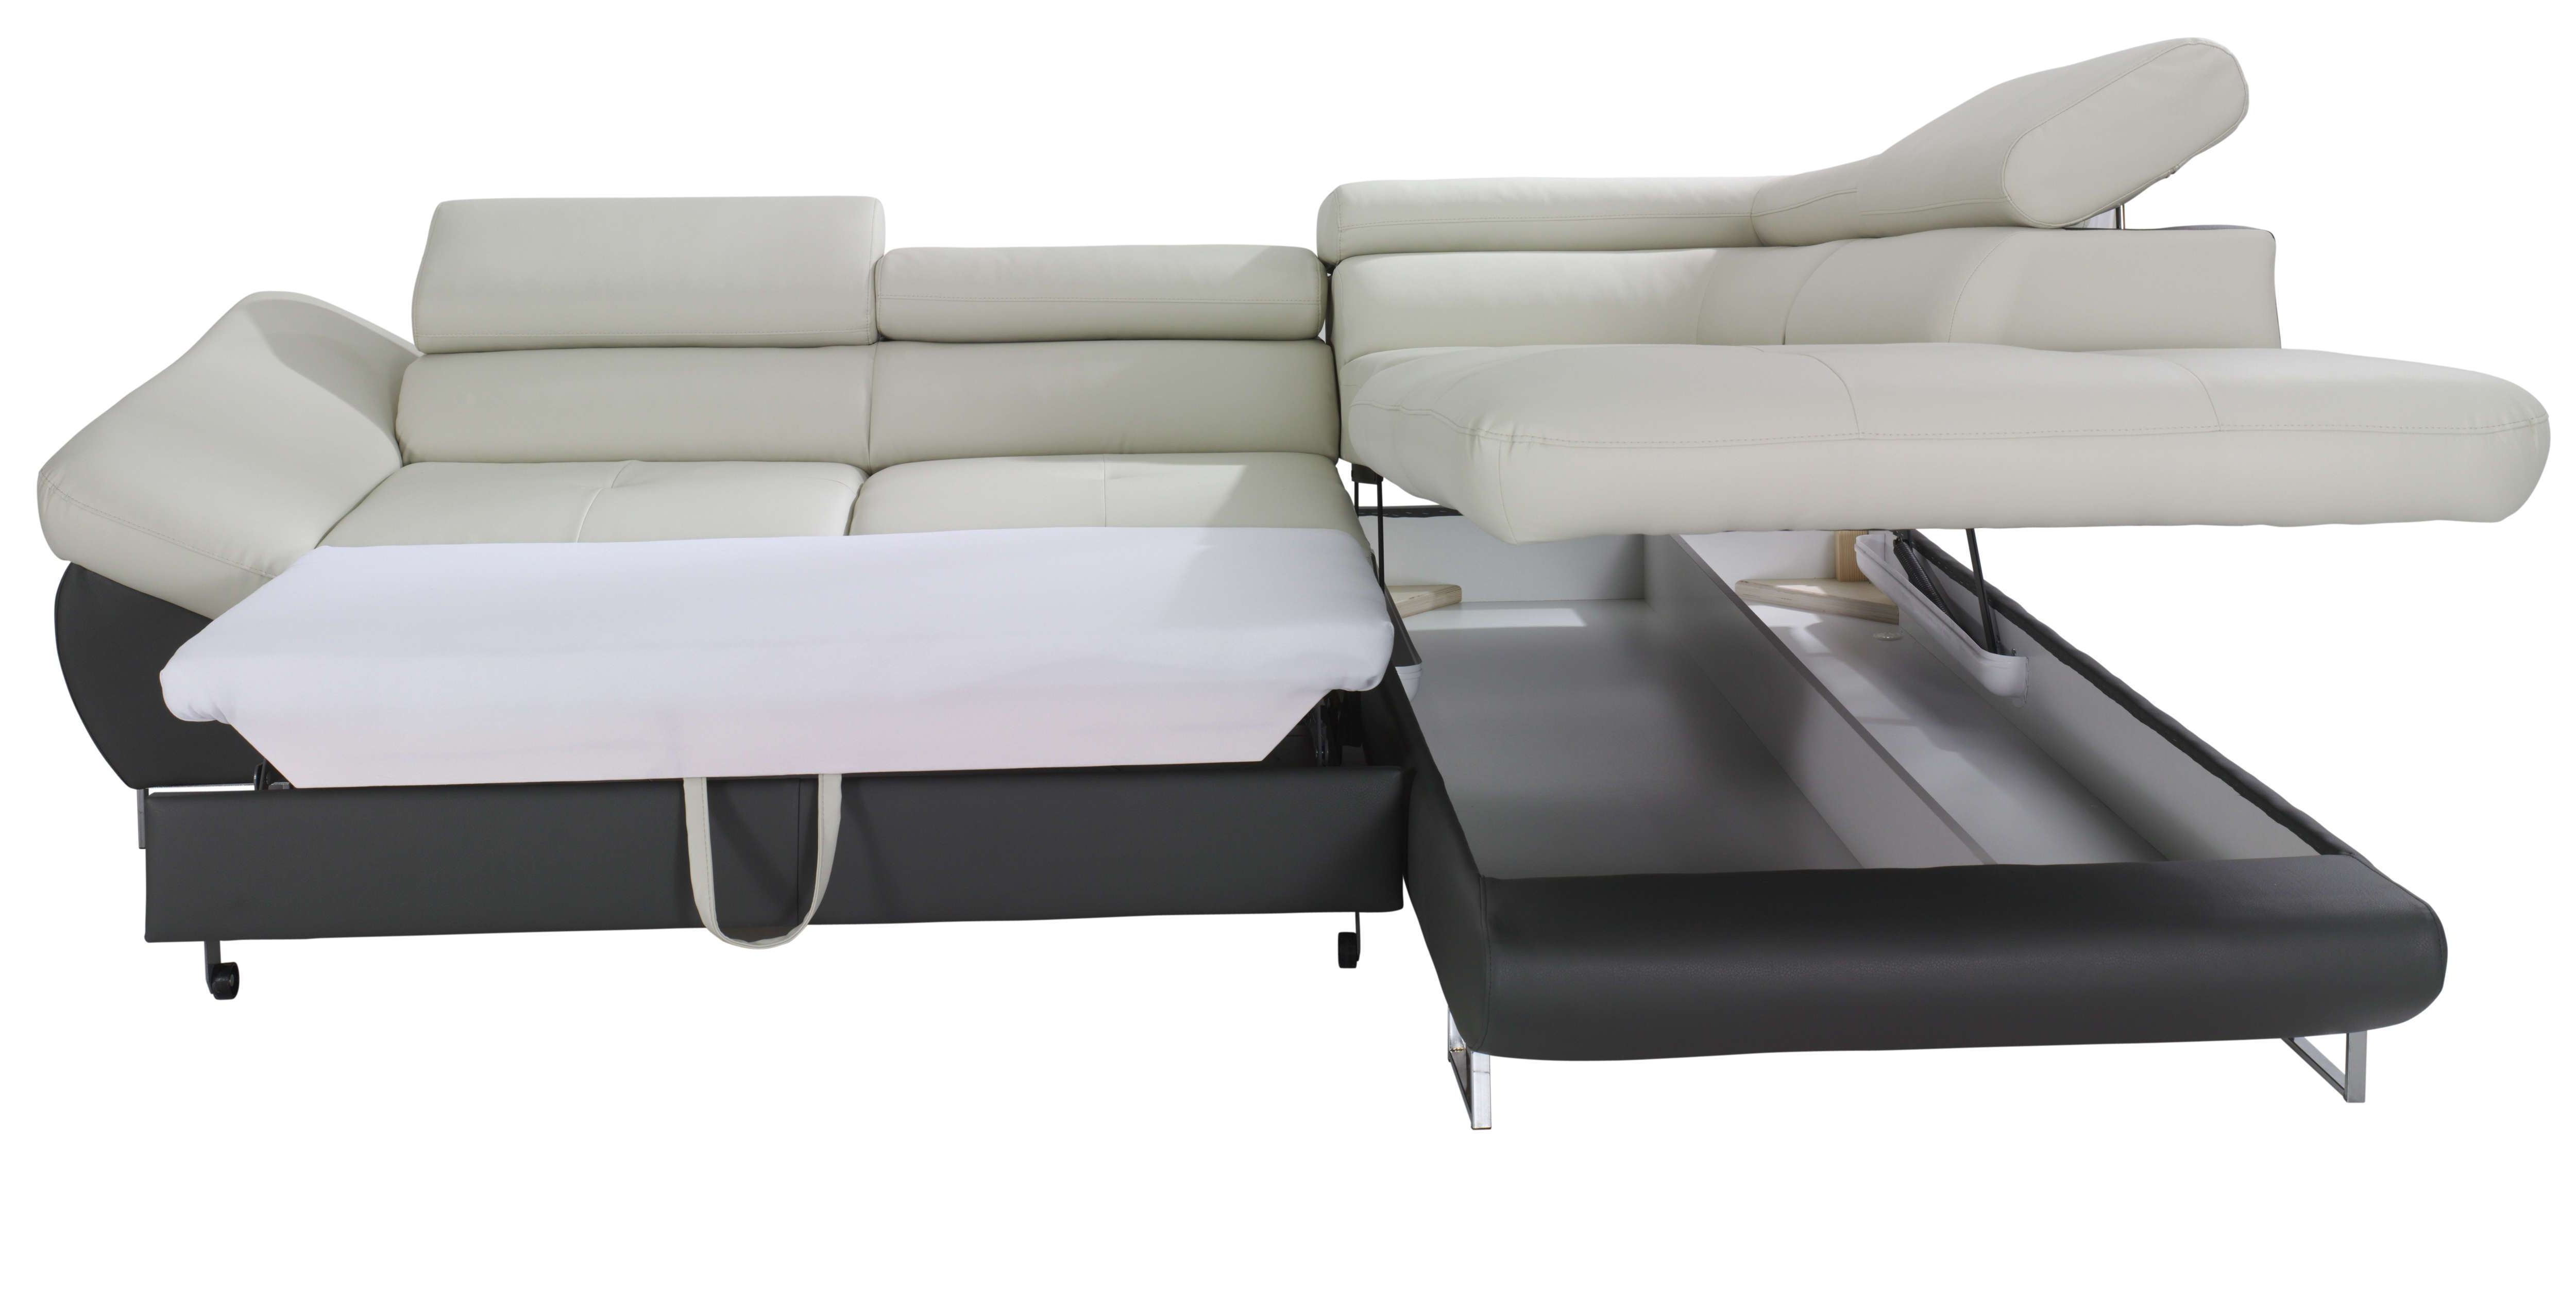 Well Liked Perfect King Size Sleeper Sofa 76 On Sofas And Couches Set With Regarding King Size Sleeper Sofas (View 15 of 15)